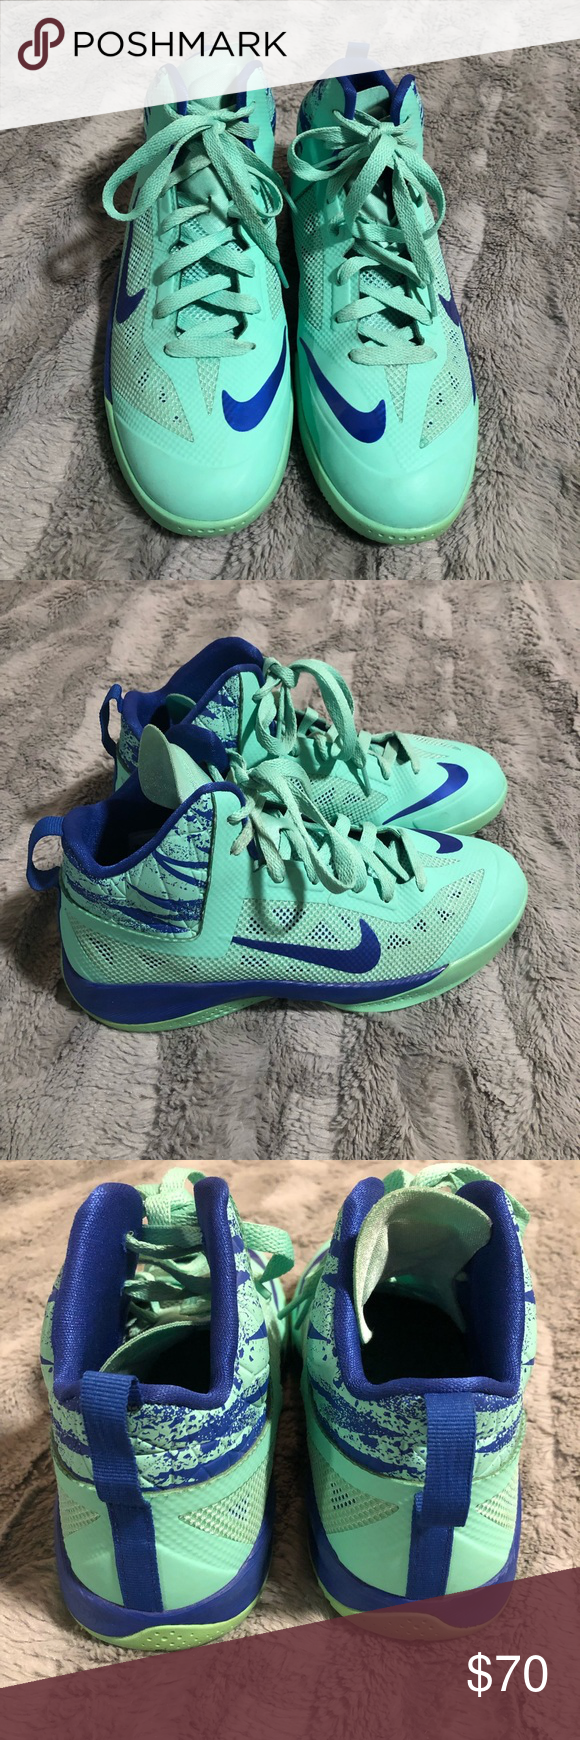 8426f50955d Boys Nike Hyperfuse basketball shoes In great condition